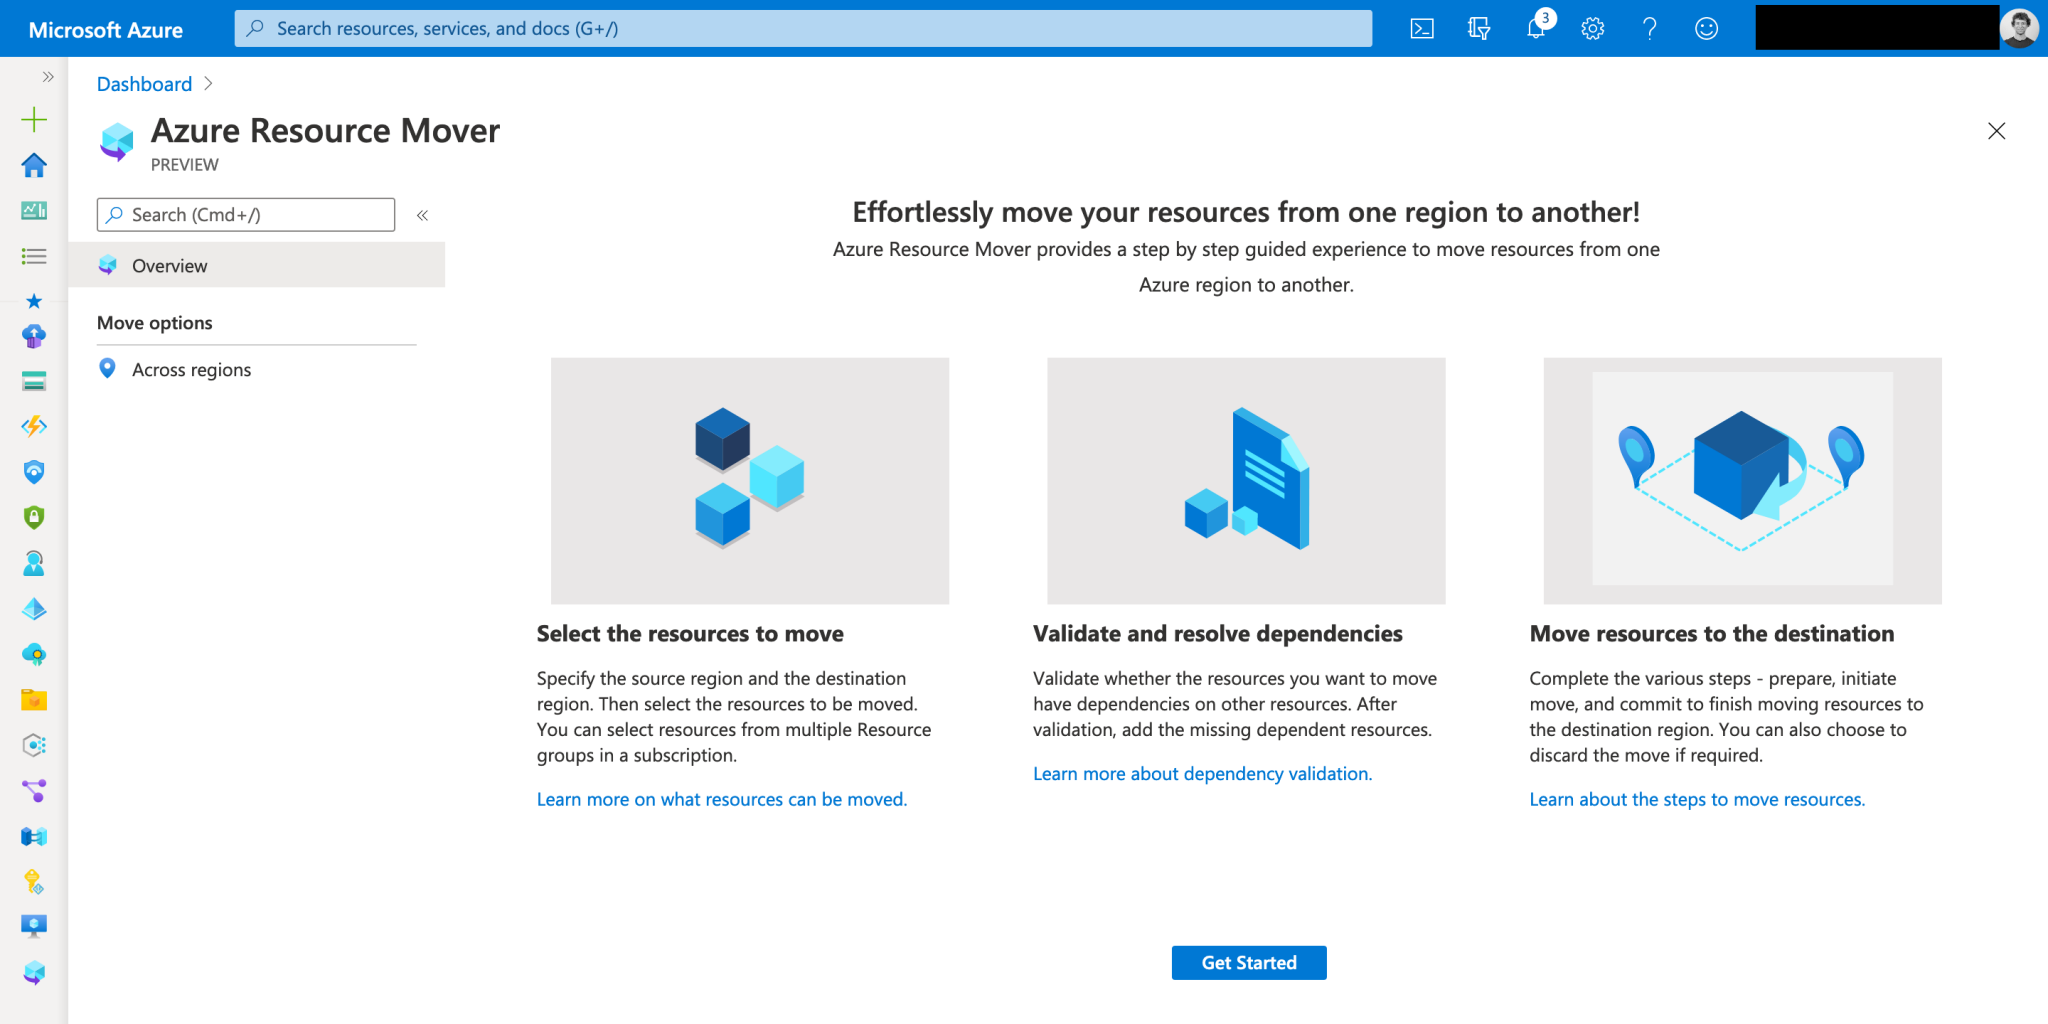 Introduction to Azure Resource Mover